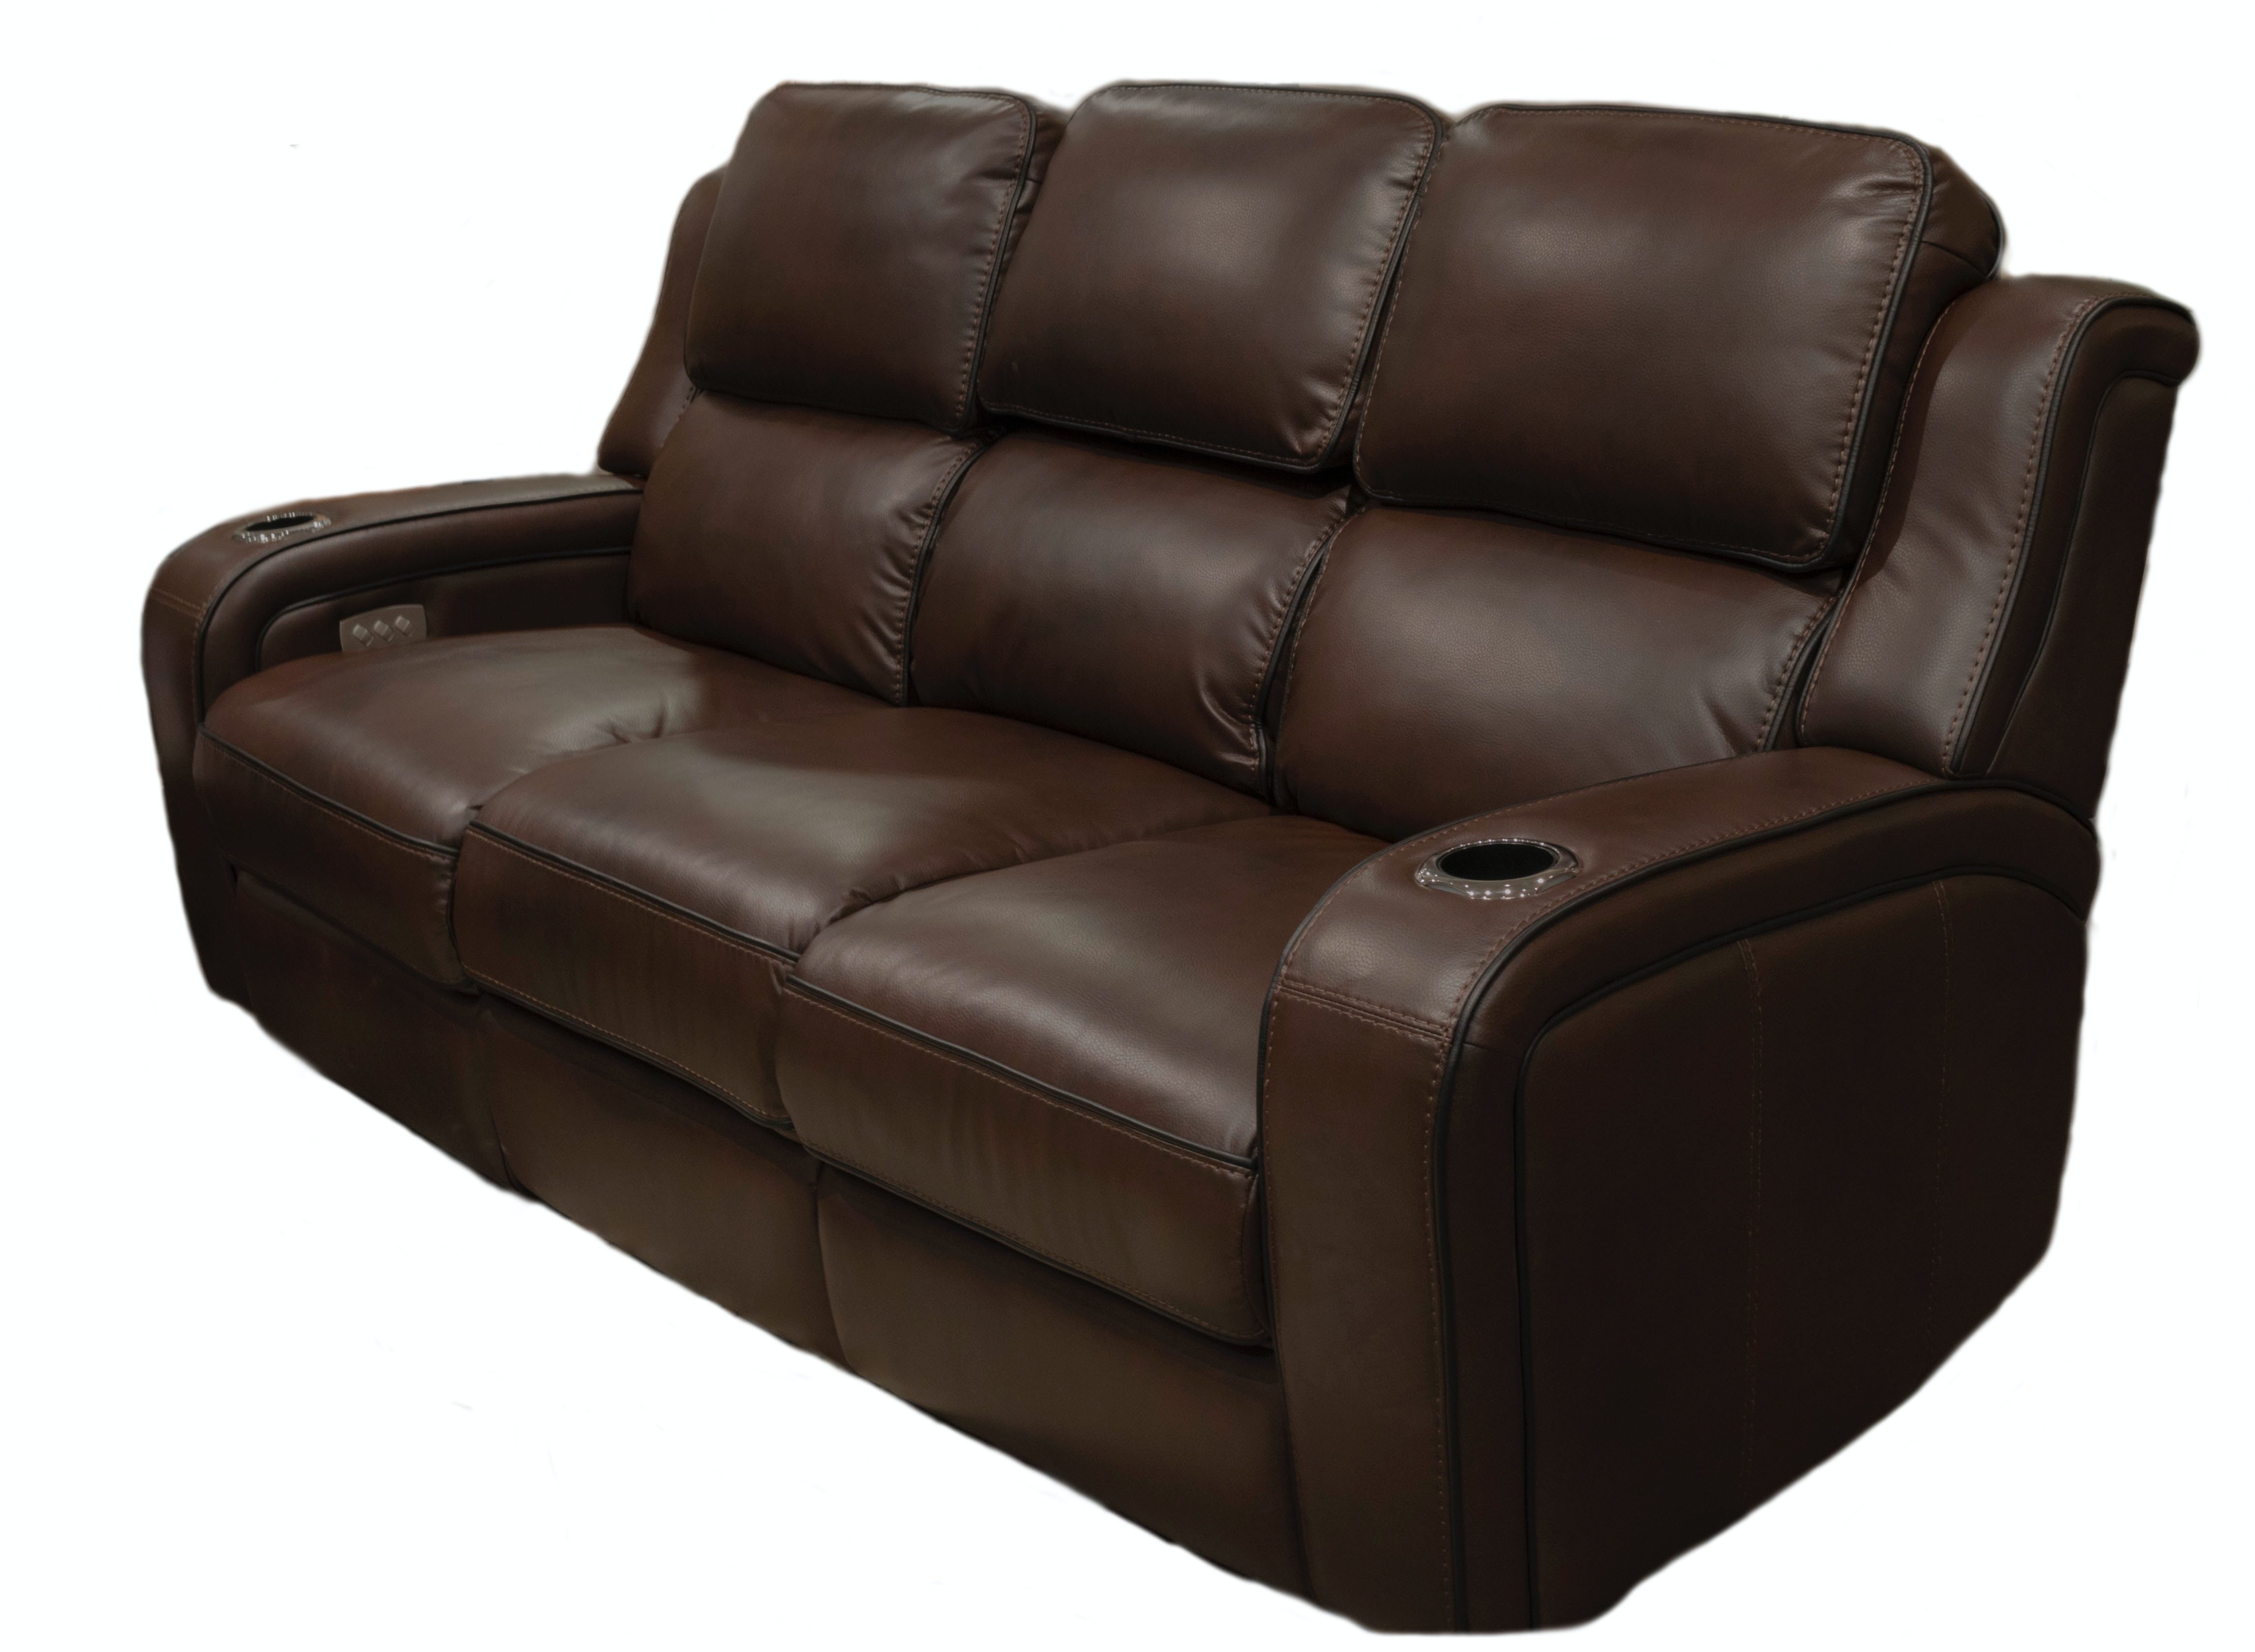 lane home furnishings leather sofa and loveseat from the bowden collection upholstering a corner synergy living room power reclining 514 52phrla